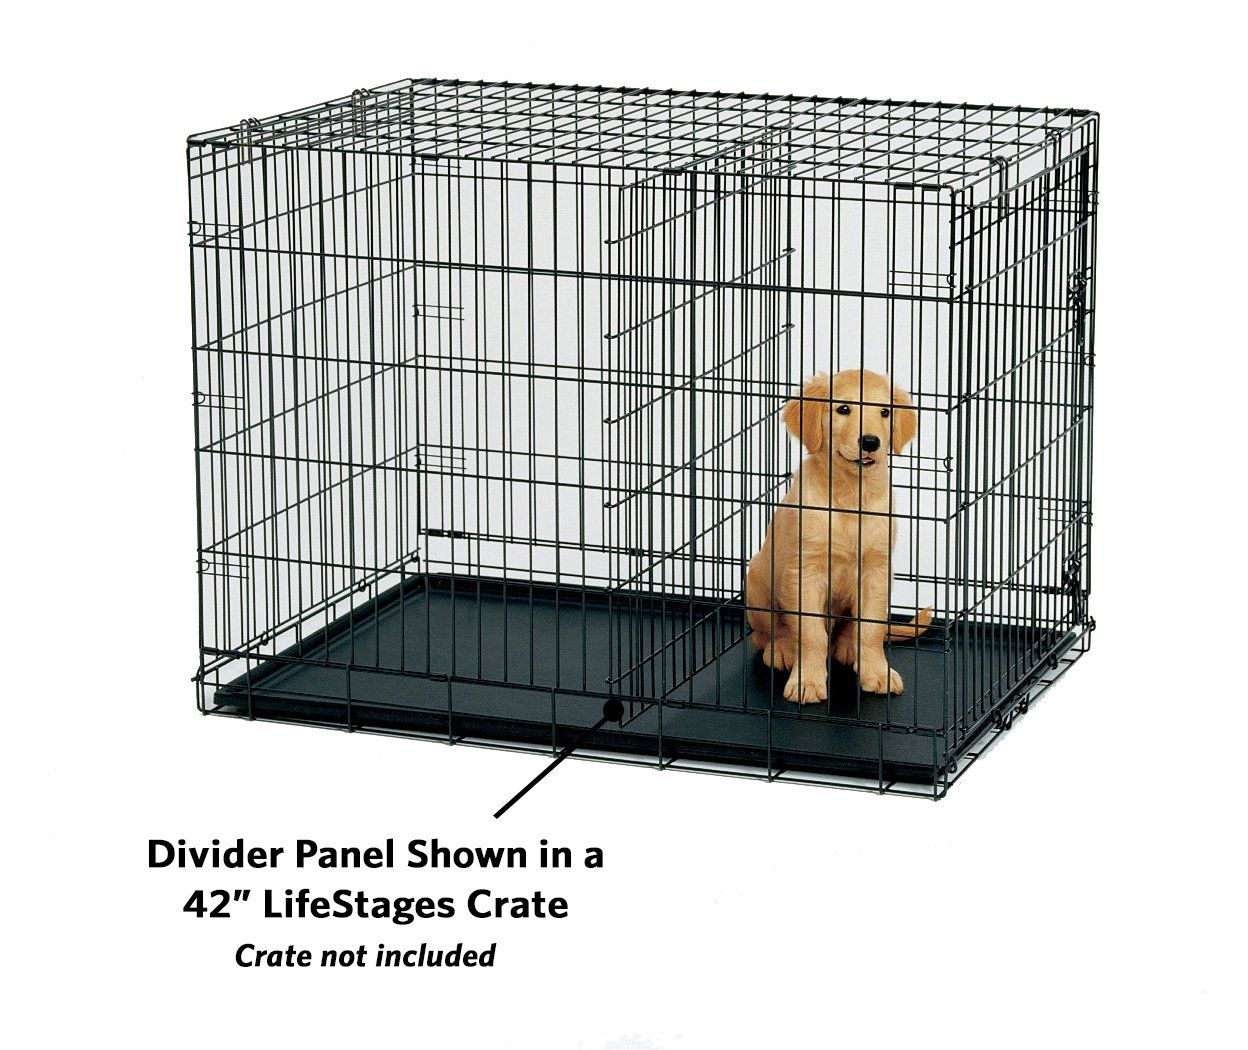 Midwest Homes For Pets Divider Panel Fits Models 1624 1624dd 1924